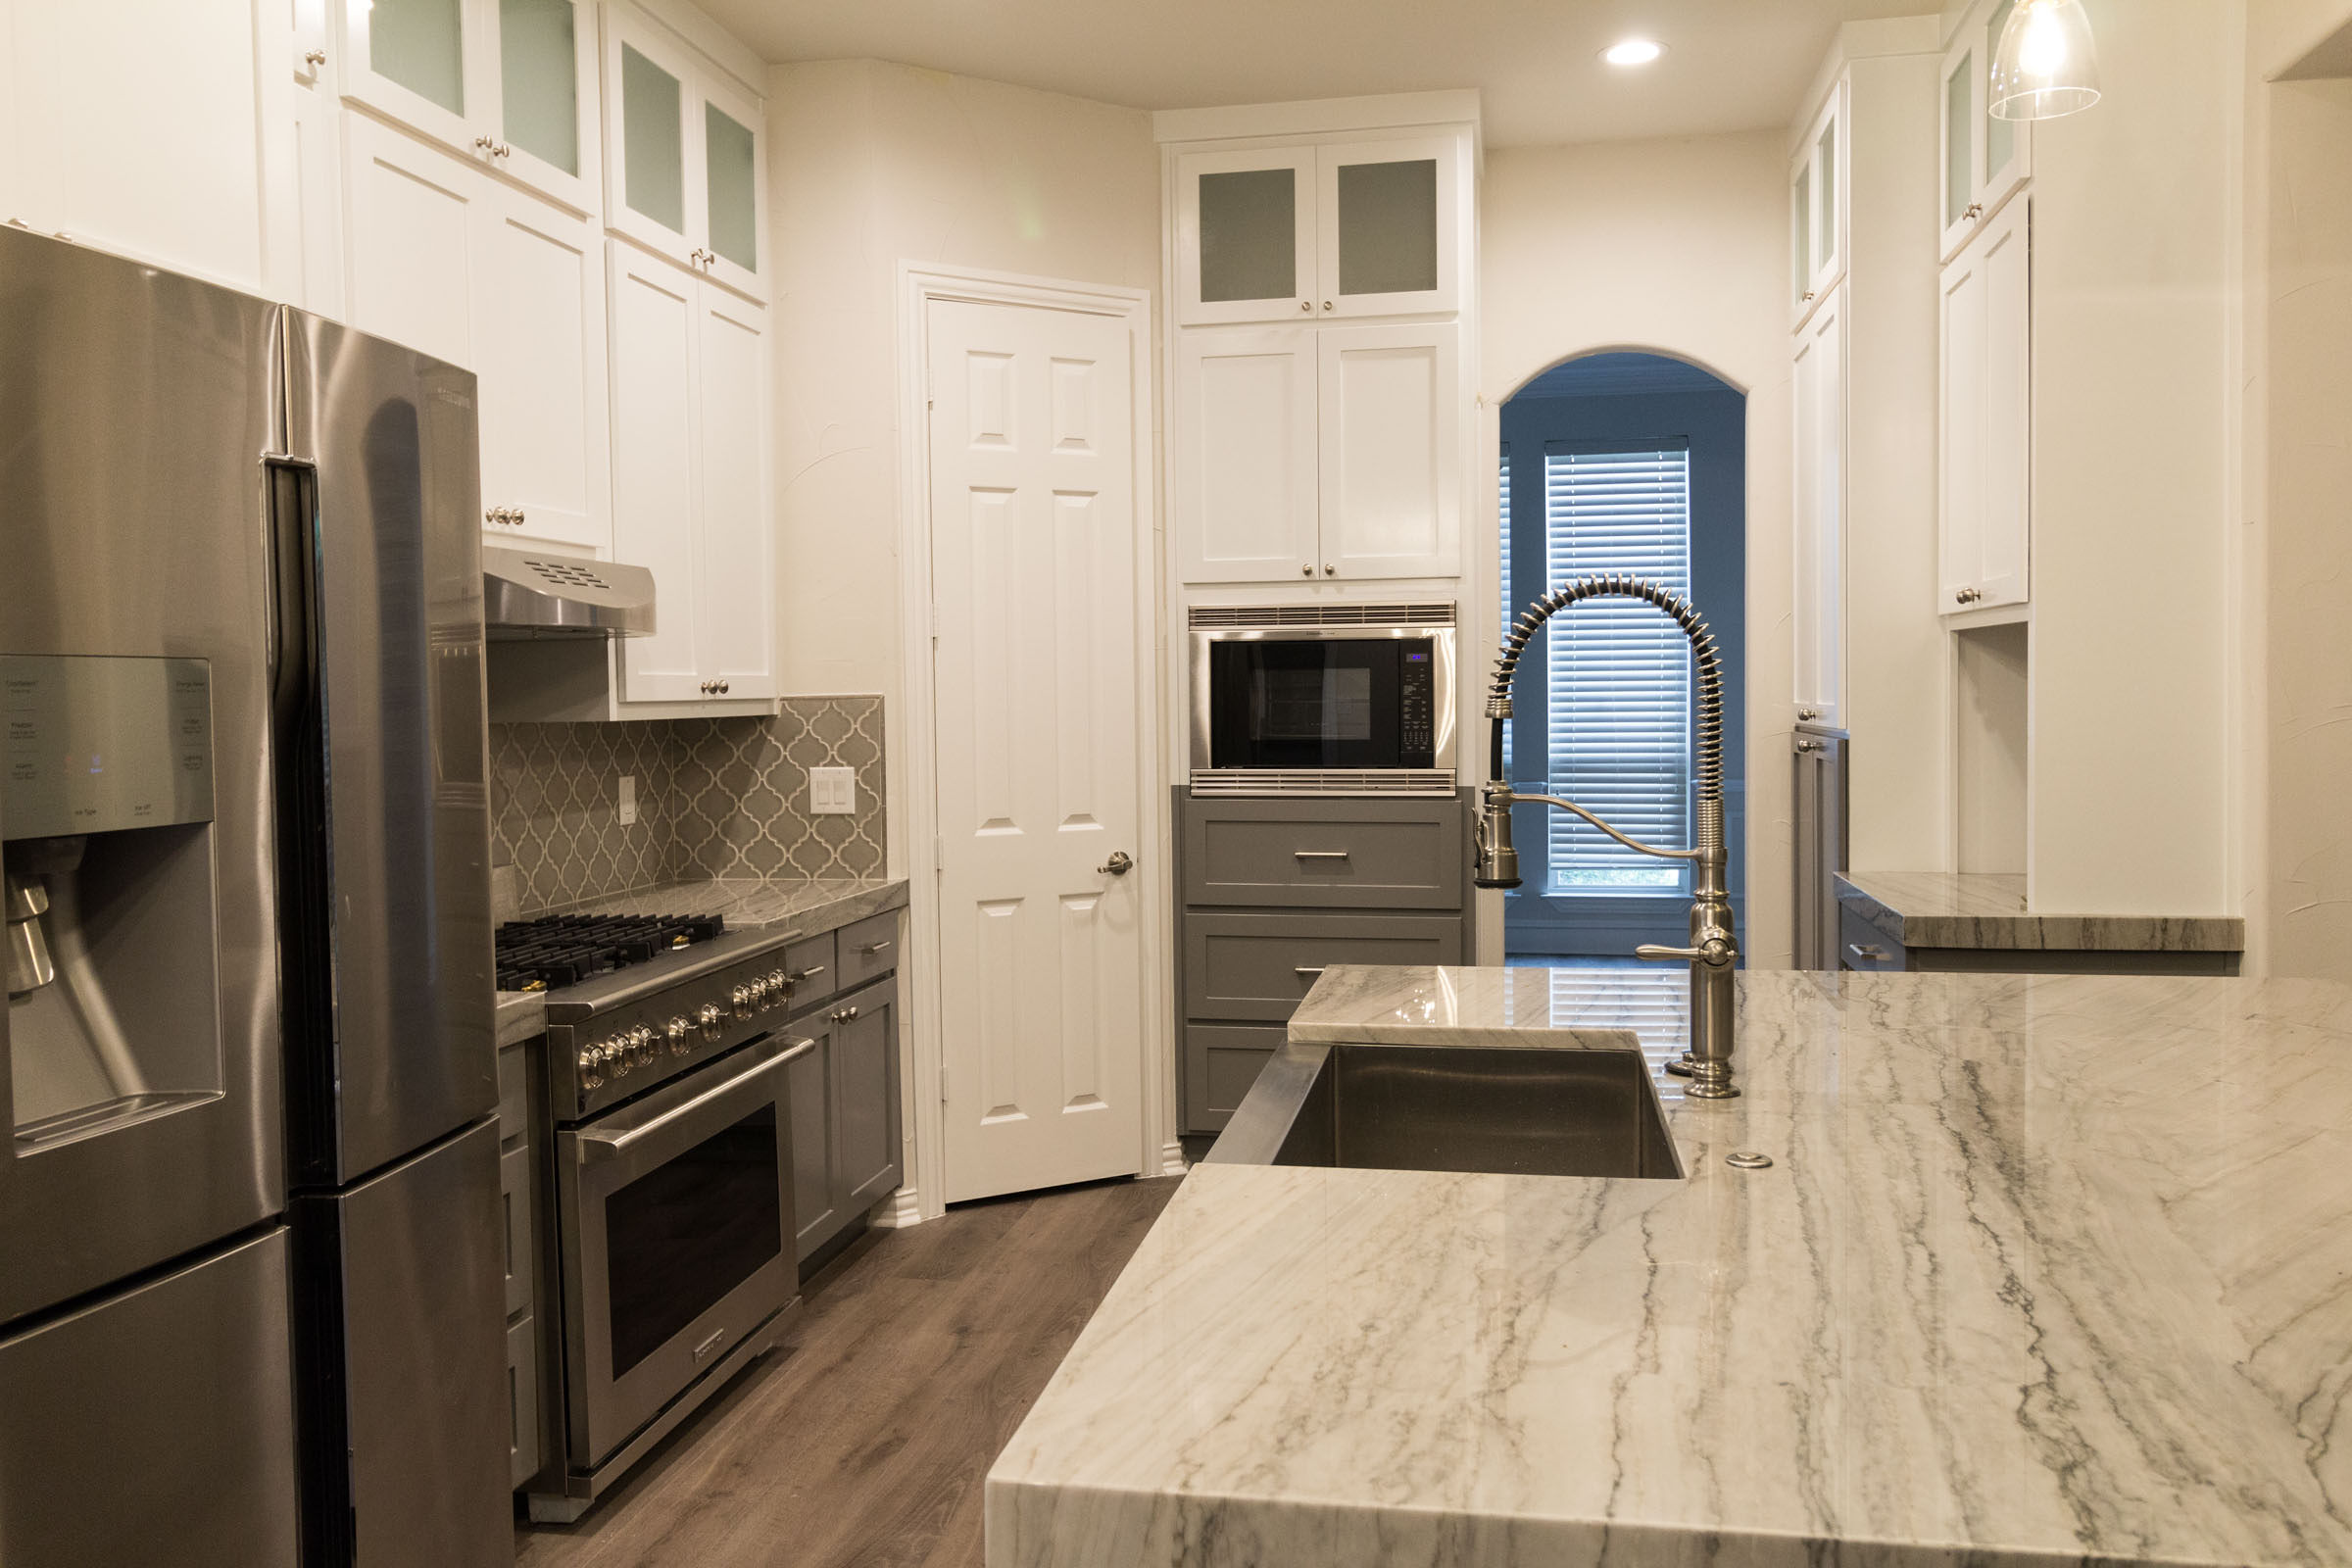 Contemporary kitchen remodel, grey and white, shaker cabinets, stainless steel, farmhouse sink, open floor plan